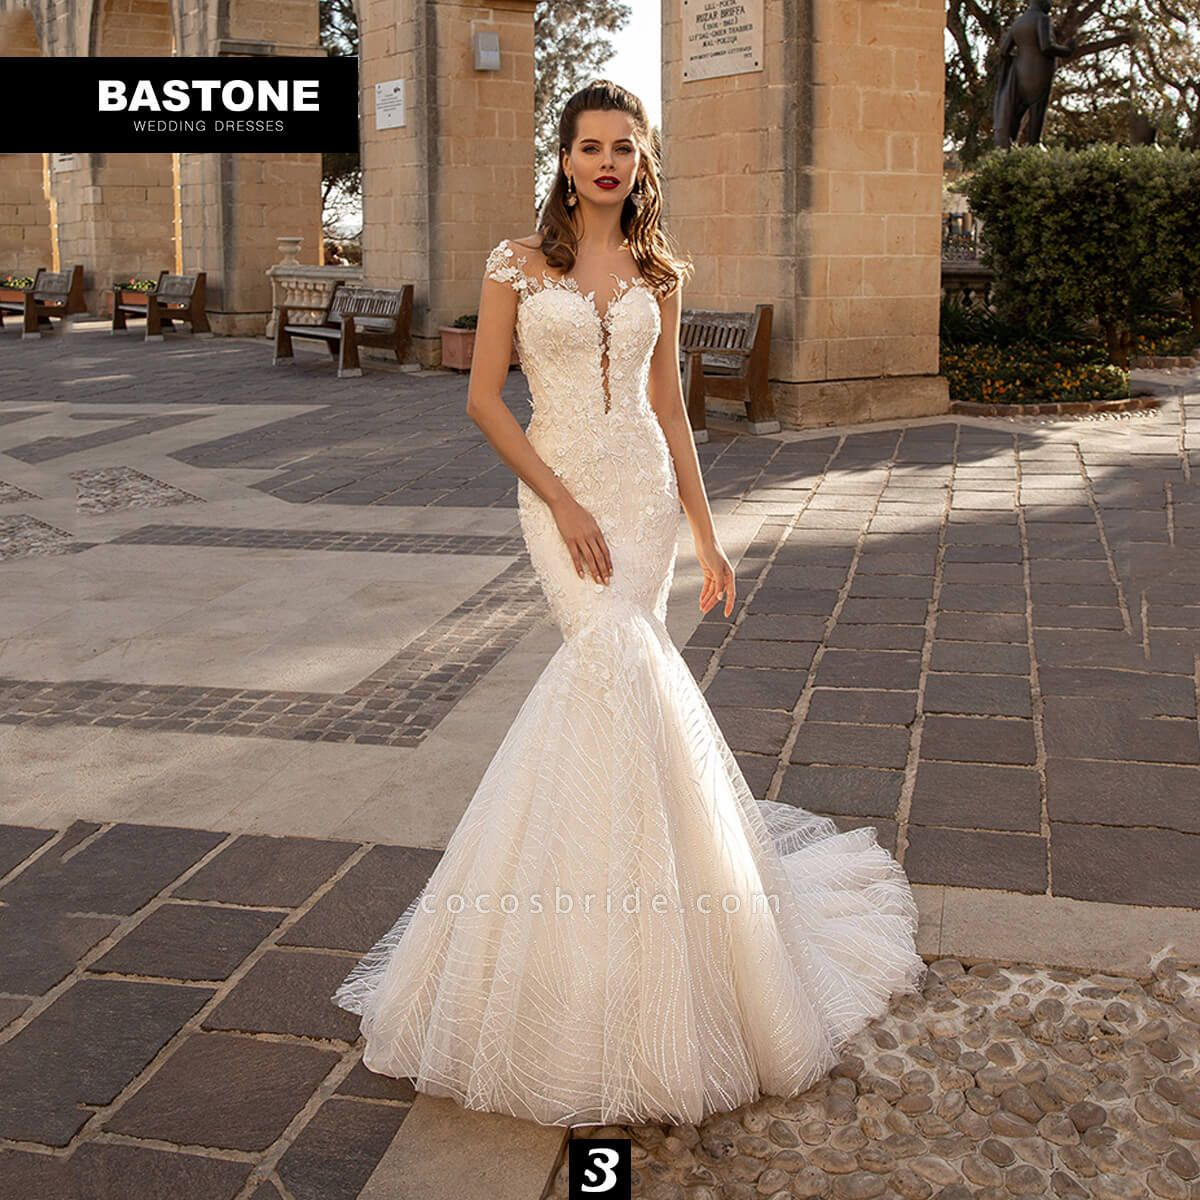 CN265L Wedding Dresses Mermaid NEW 2021 Collection